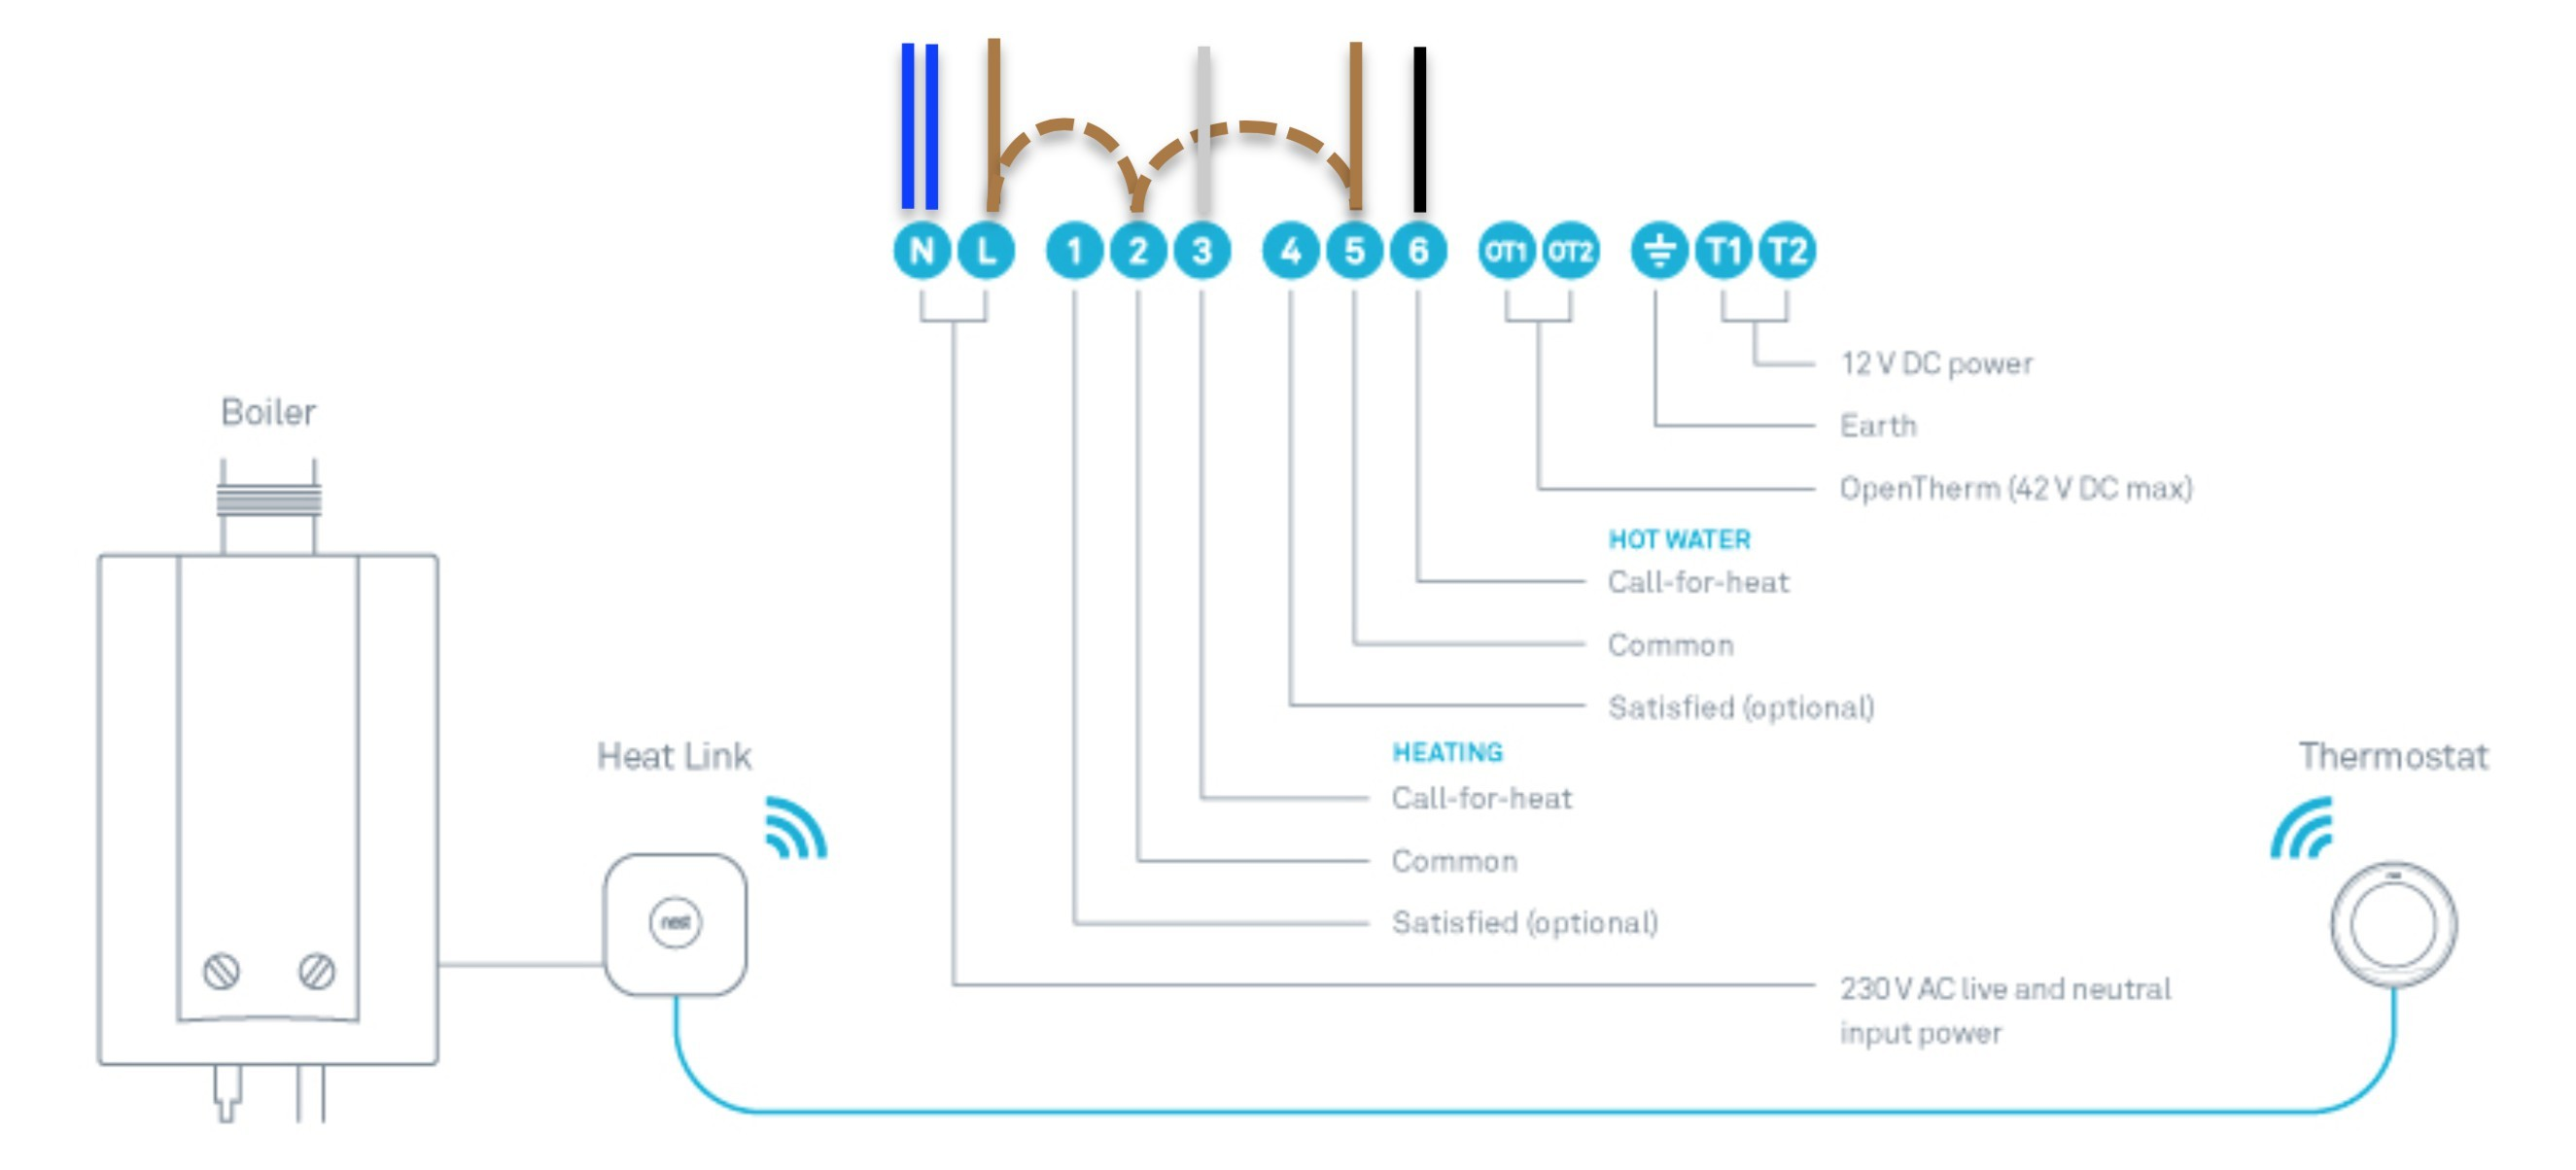 Nest thermostat Wiring Diagram Heat Pump Beautiful New House Old Tech  Replacing A Danfoss Tp9000 with